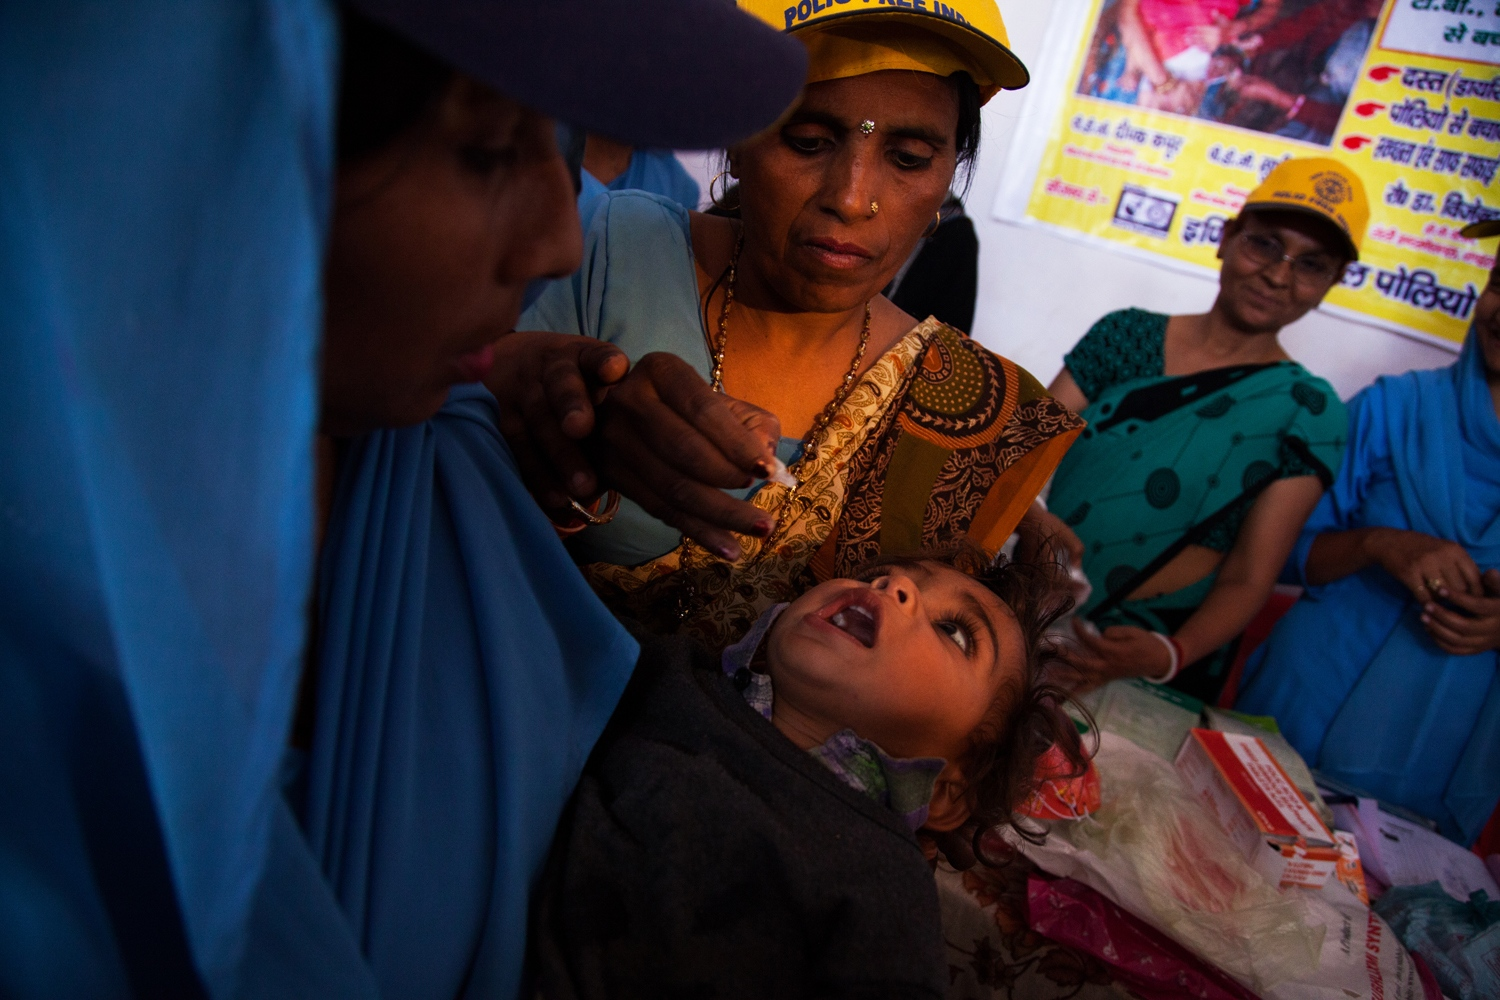 A child being vaccinated for polio in Moradabad, India.